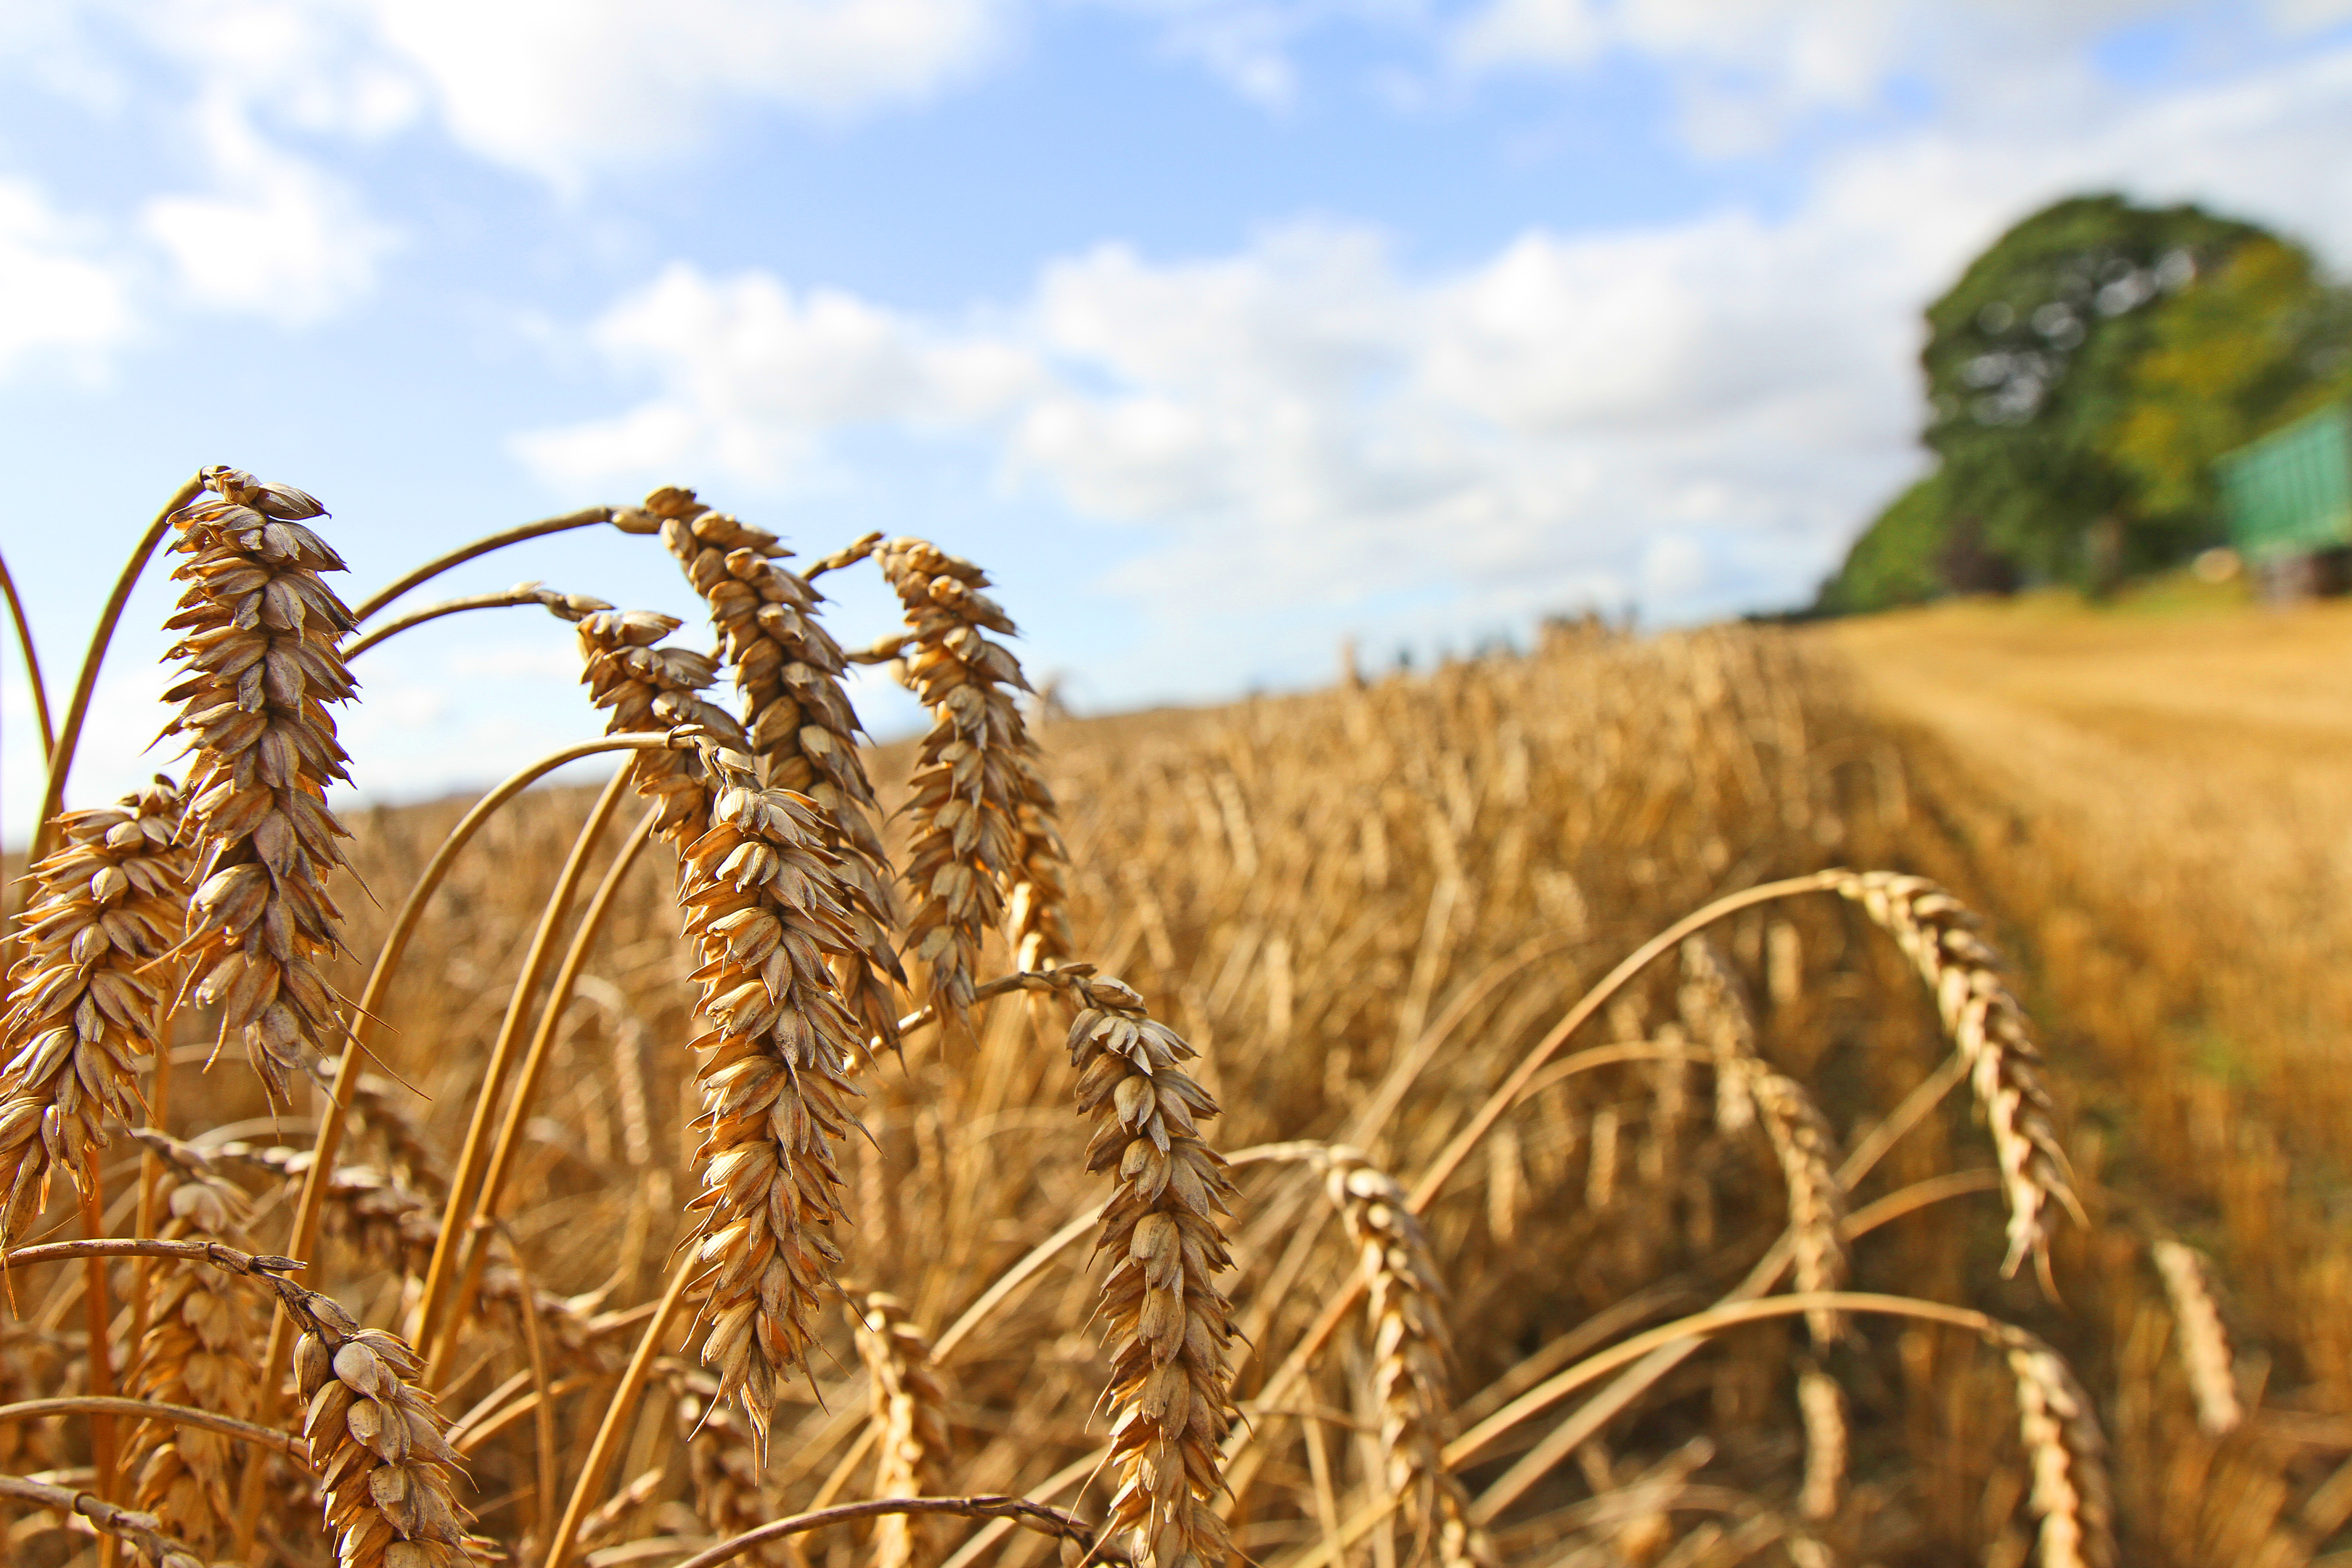 The distilling industry is the main customer for wheat in central and northern Scotland